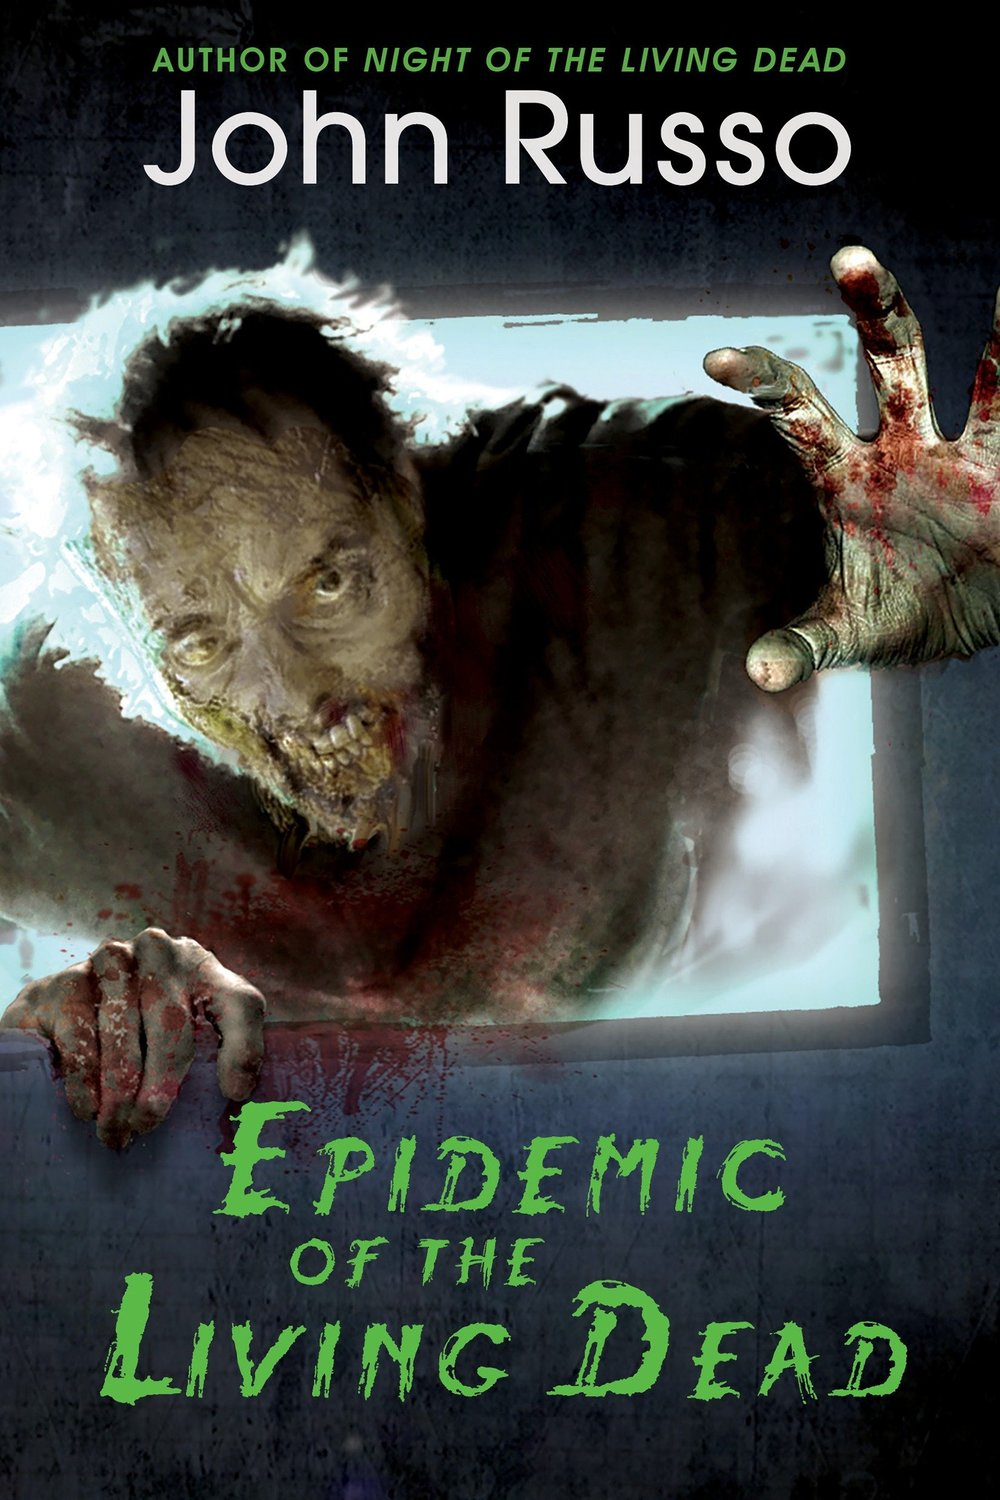 Epidemic of the Living Dead_John Russo.jpg